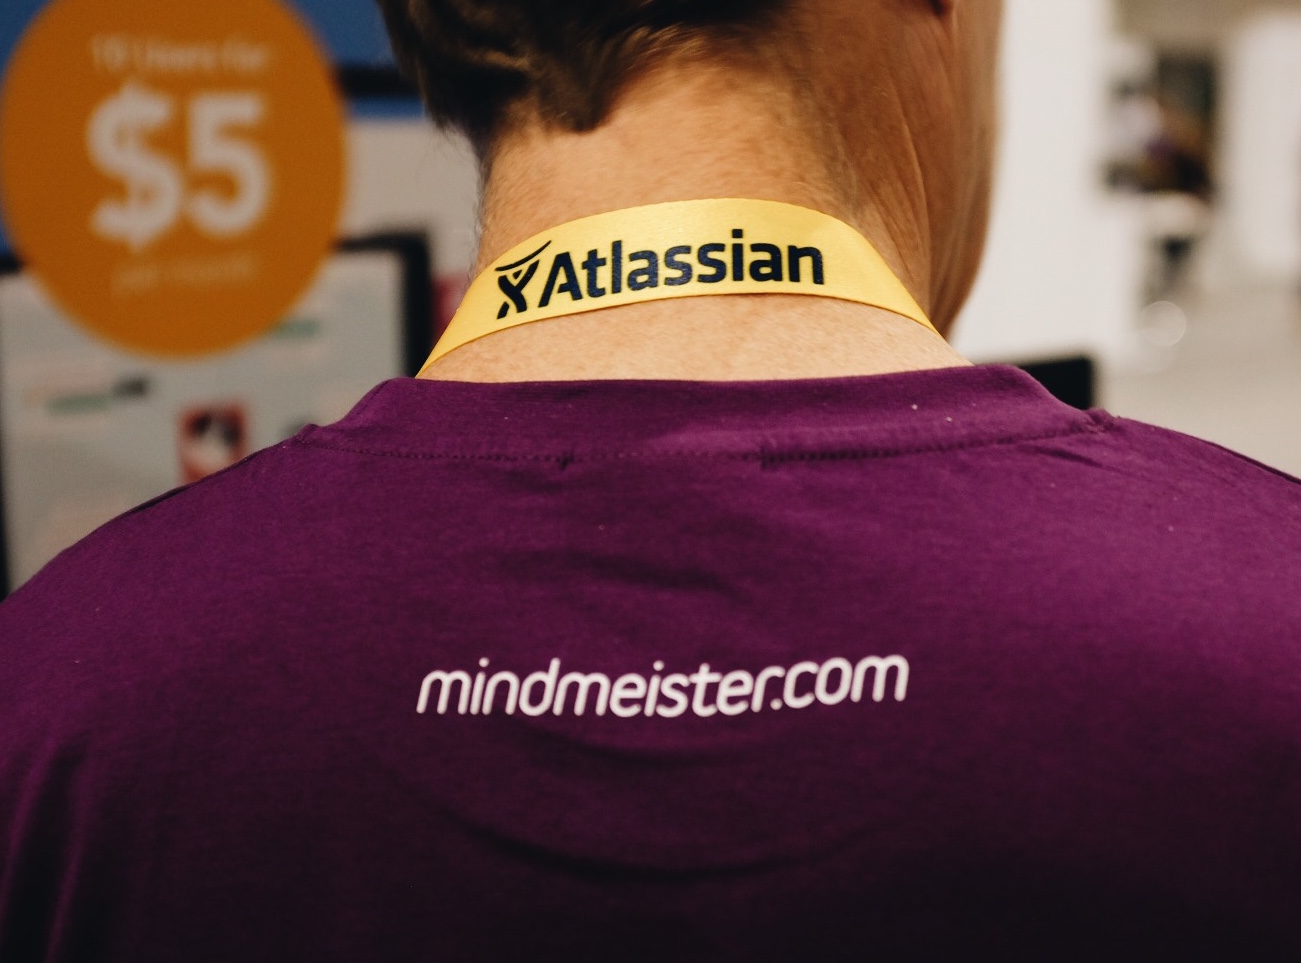 Atlassian Summit Barcelona SaaS trade show mindmeister